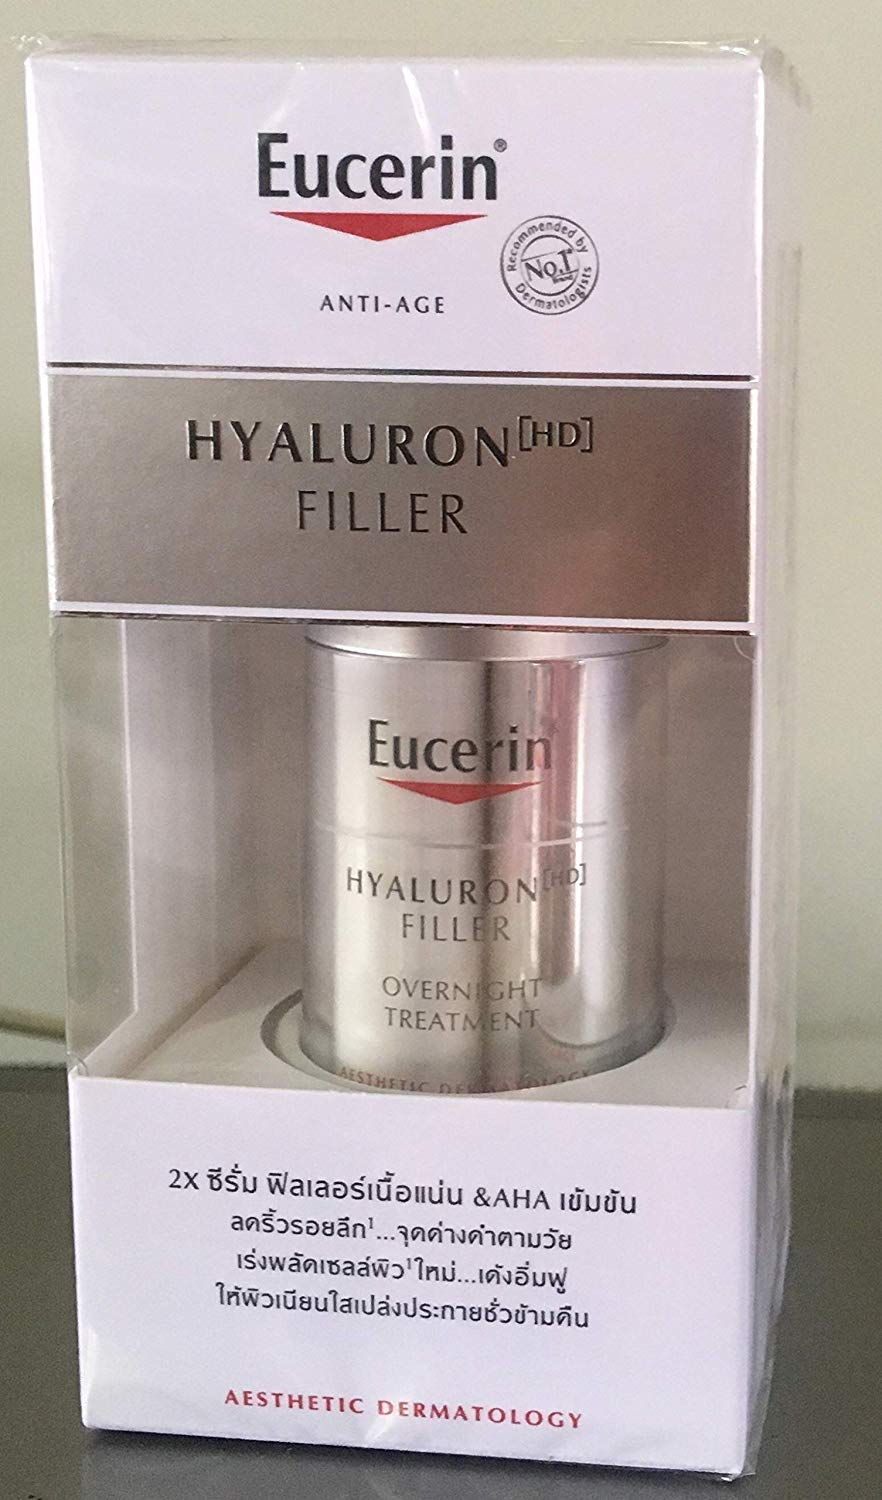 Eucerin Hyaluron [HD] Filler Overnight Treatment Serum 30ml for a refine and radiant skin overnight, anti aging, fine lines and wrinkles